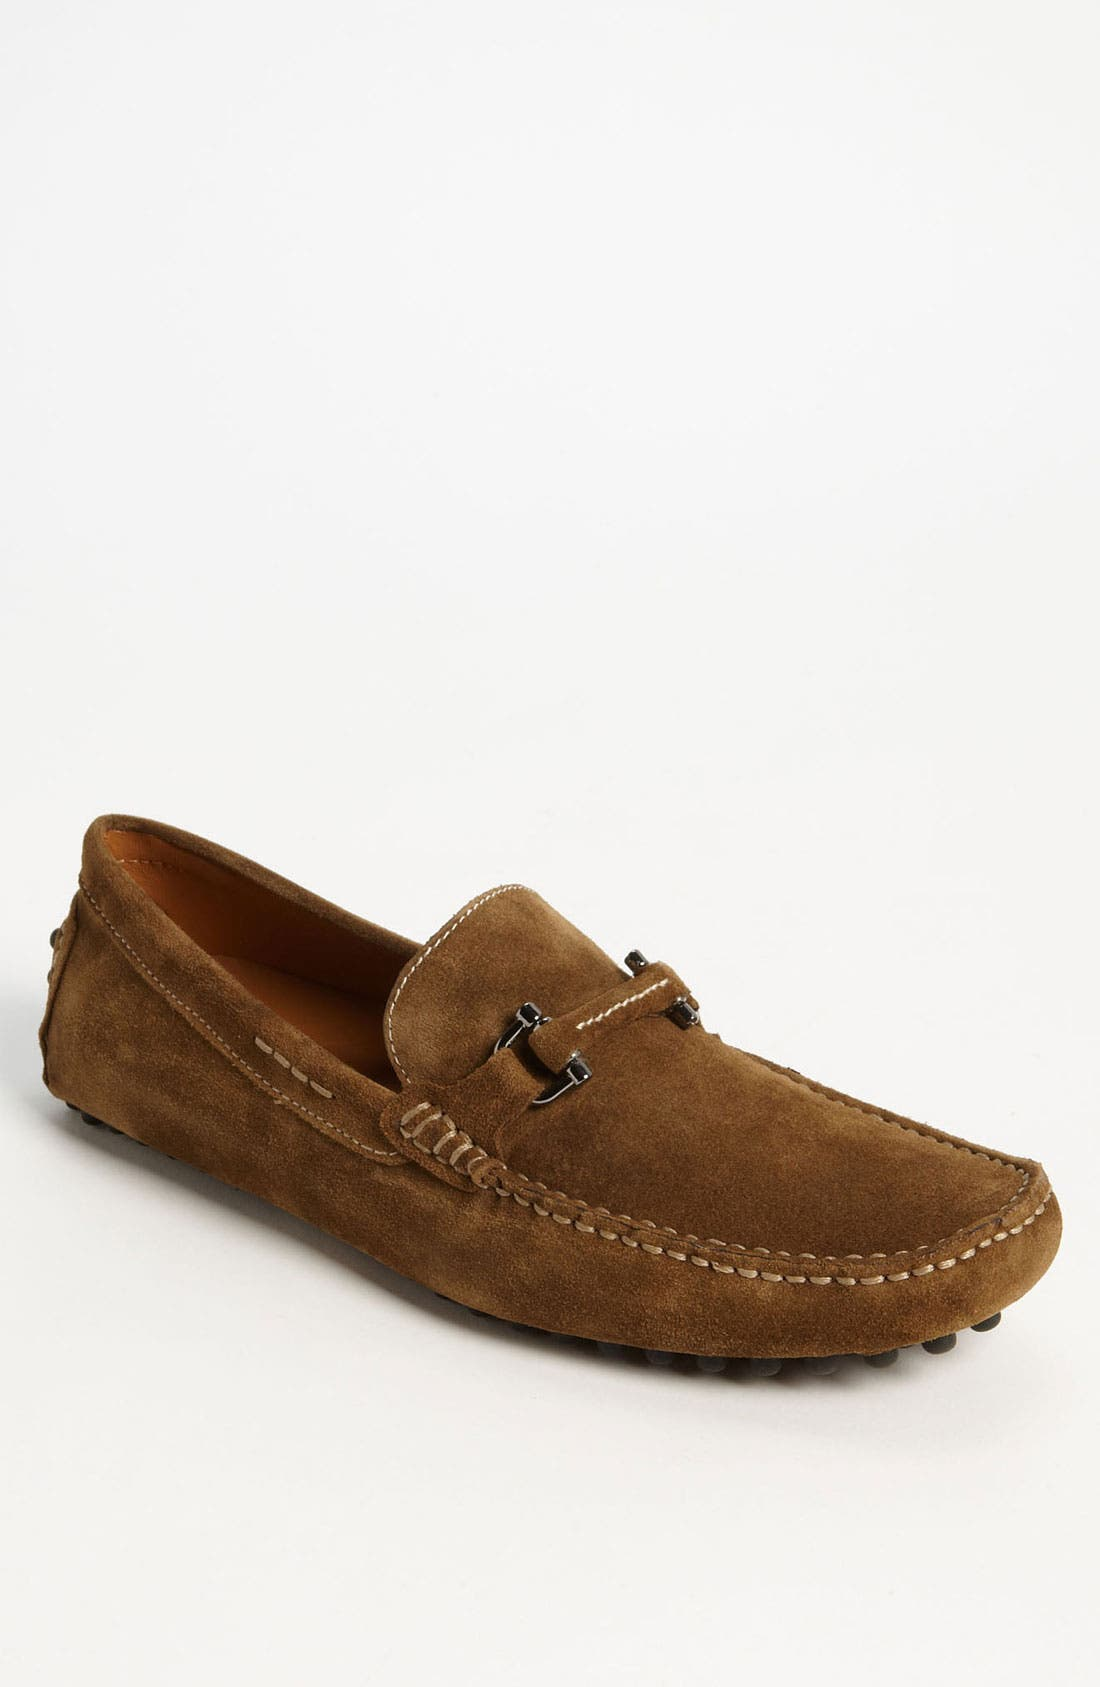 Main Image - G Brown 'Antigua' Driving Shoe